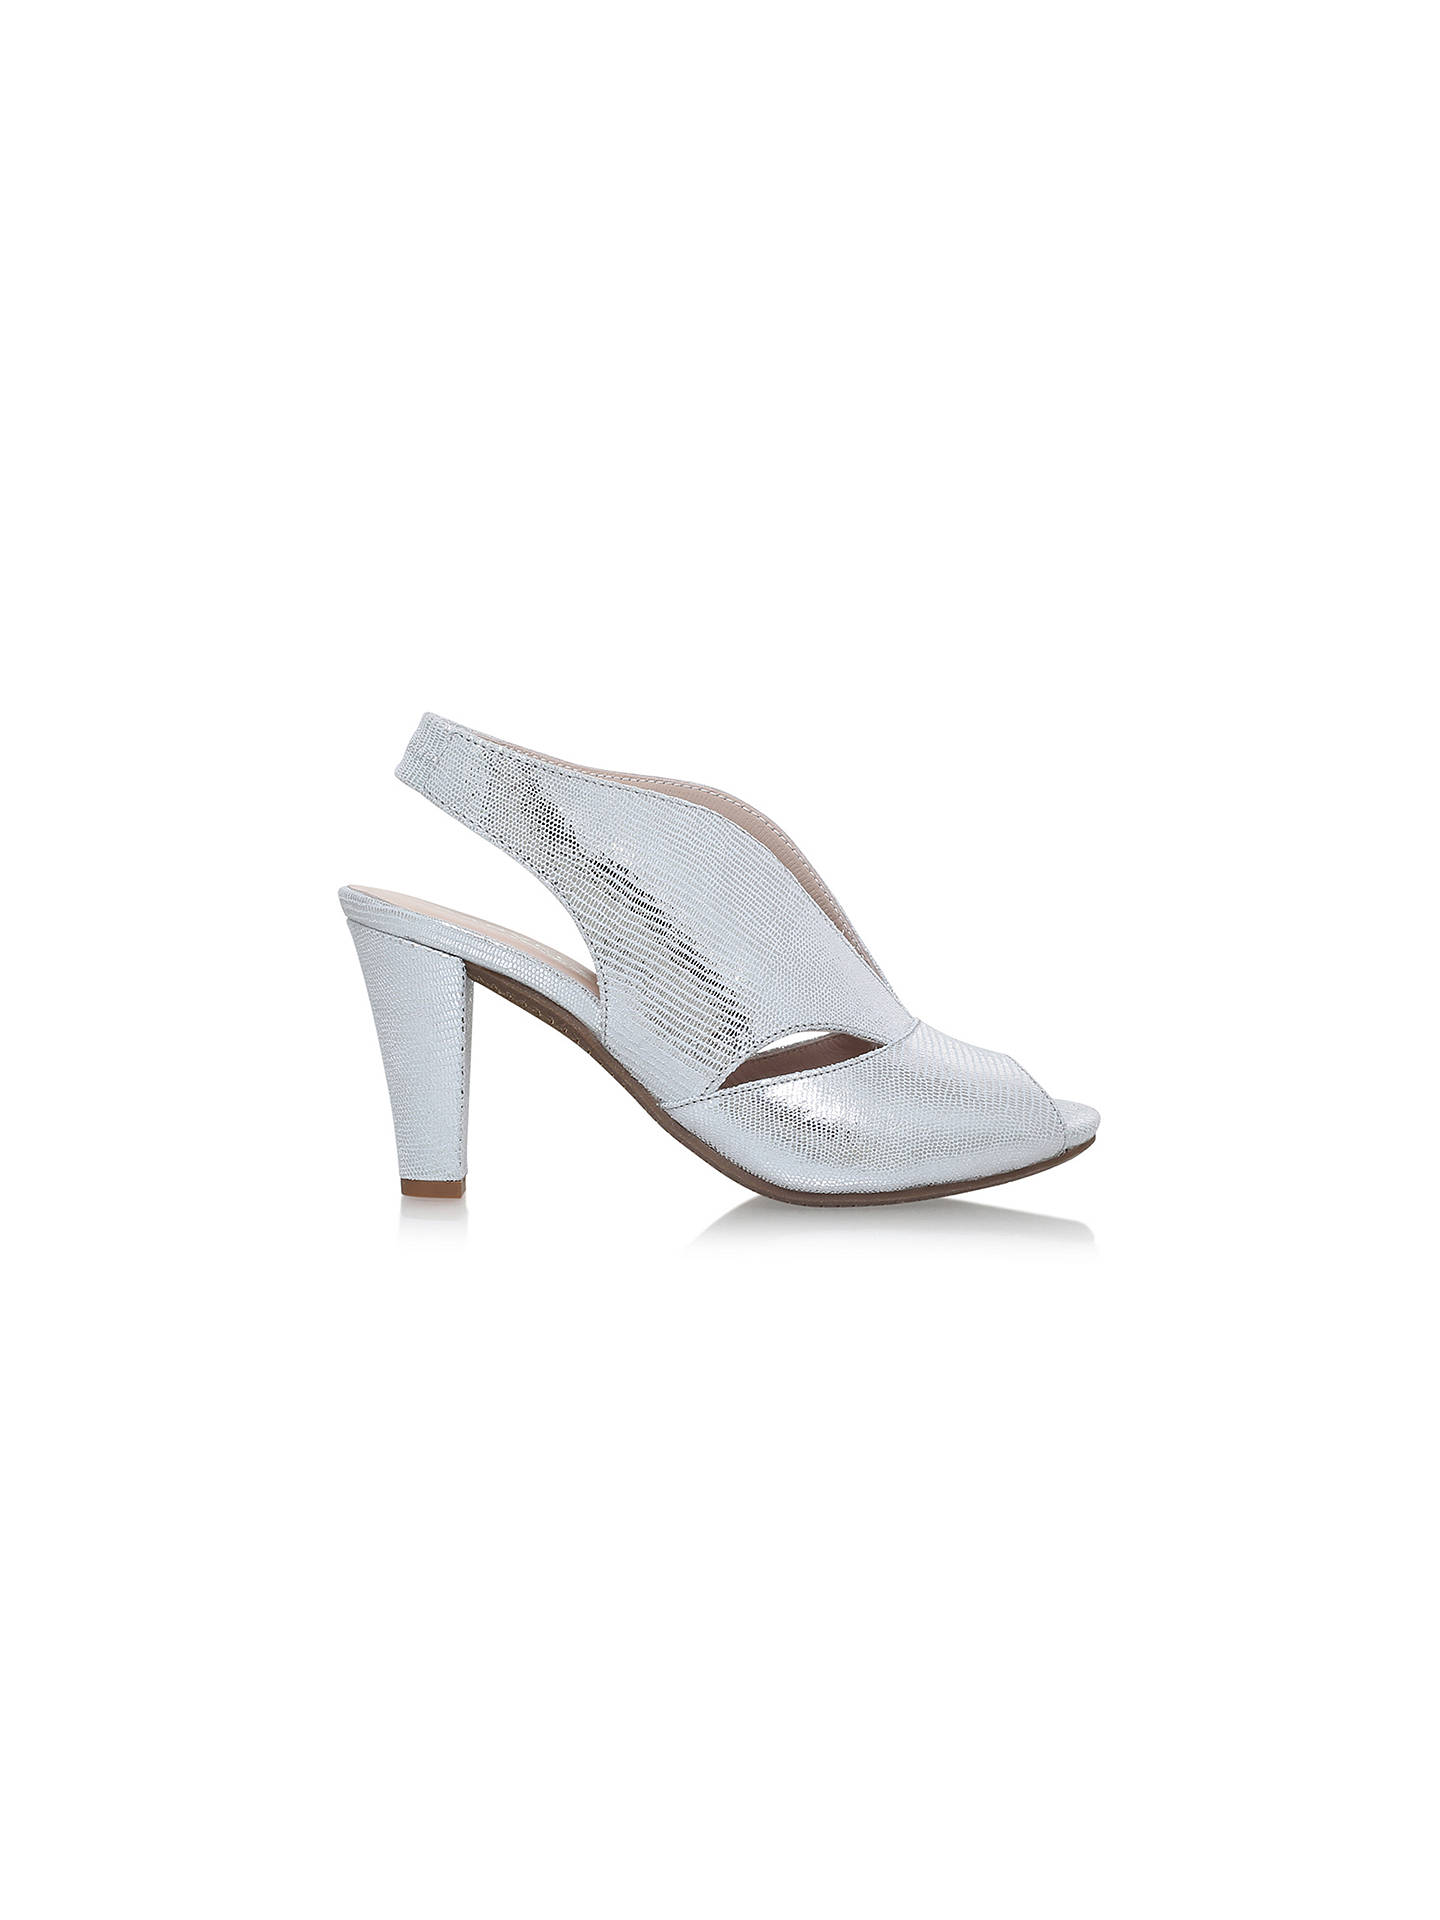 58a34e1f90389 ... Buy Carvela Comfort Arabella Cone Heel Open Toe Court Shoes, Silver  Leather, 3 Online